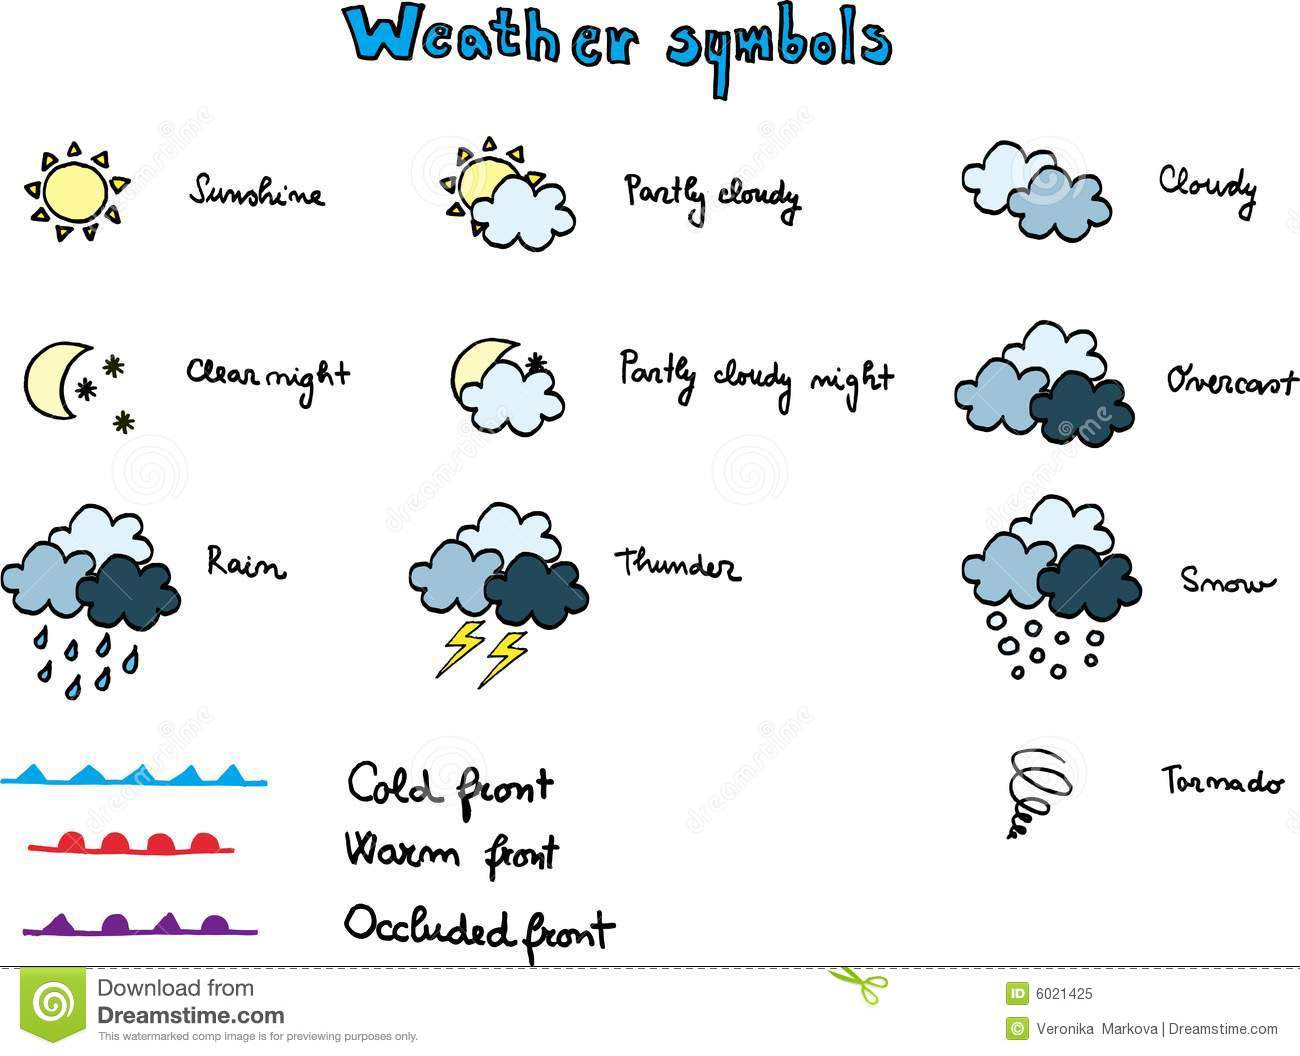 39 Meaning Of Bbc Weather Symbols Weather Symbols Of Meaning Bbc